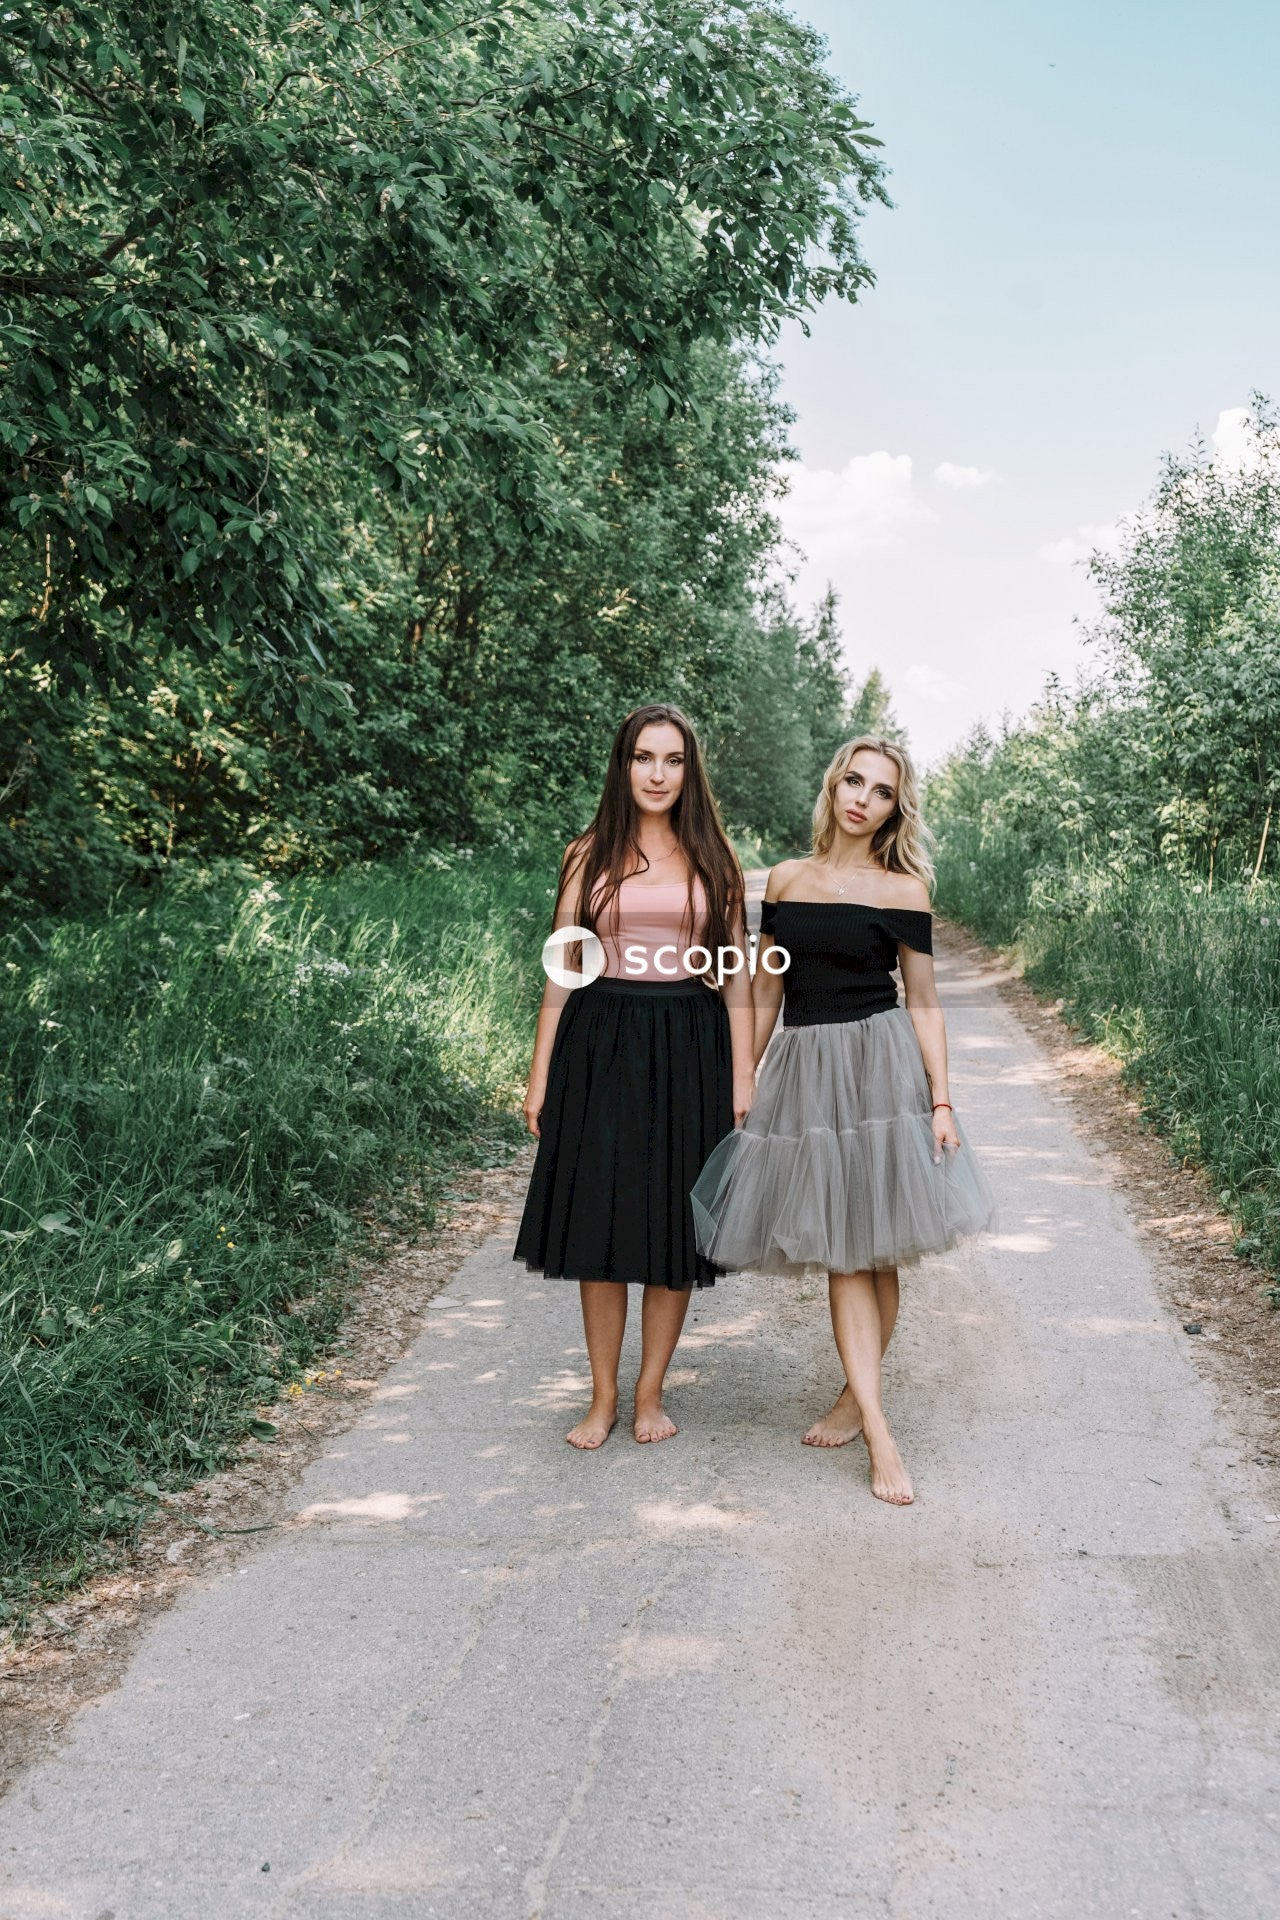 Two women standing near trees